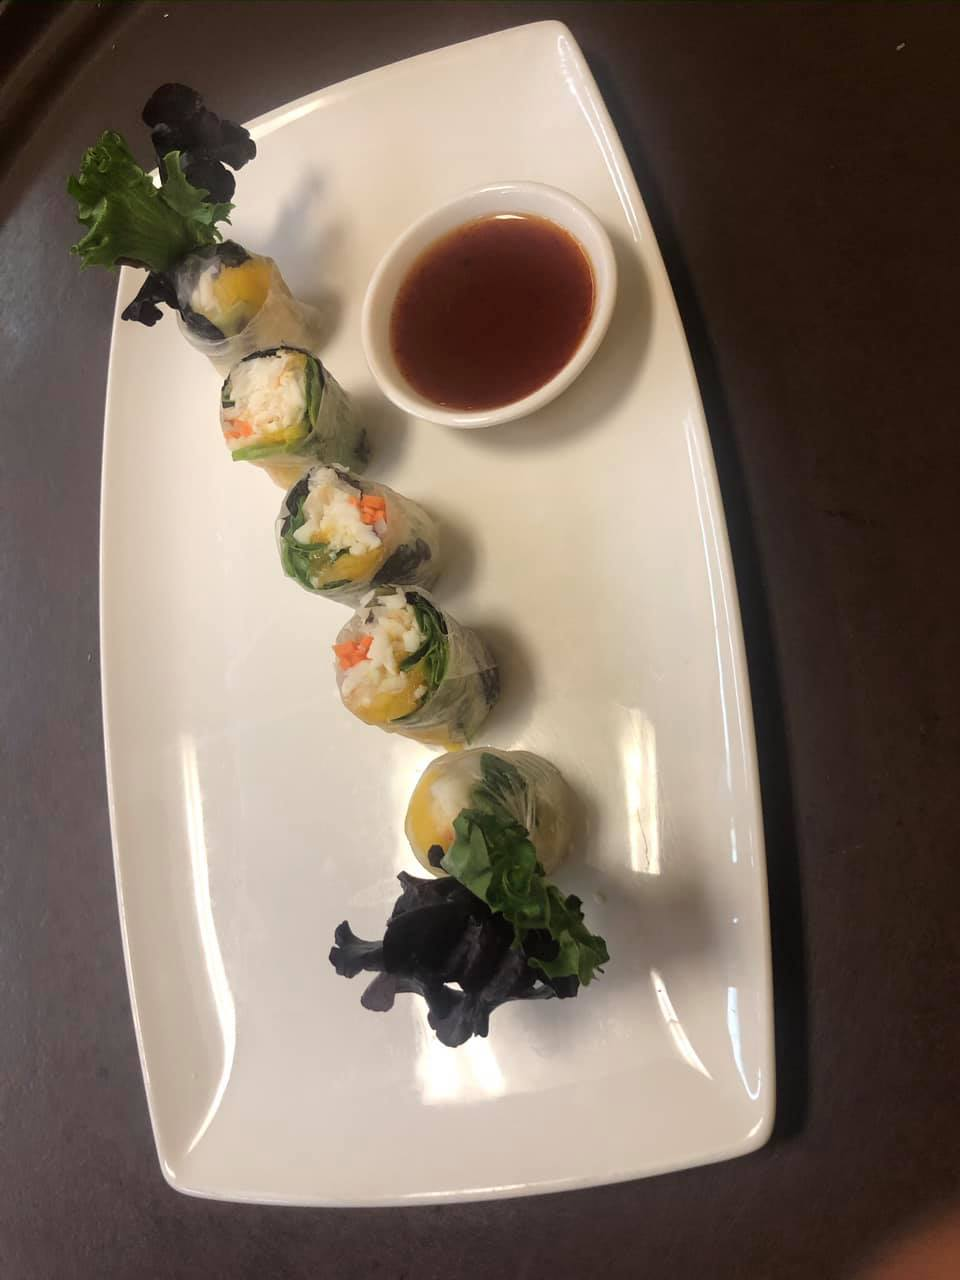 Plate of spring rolls with side of sauce